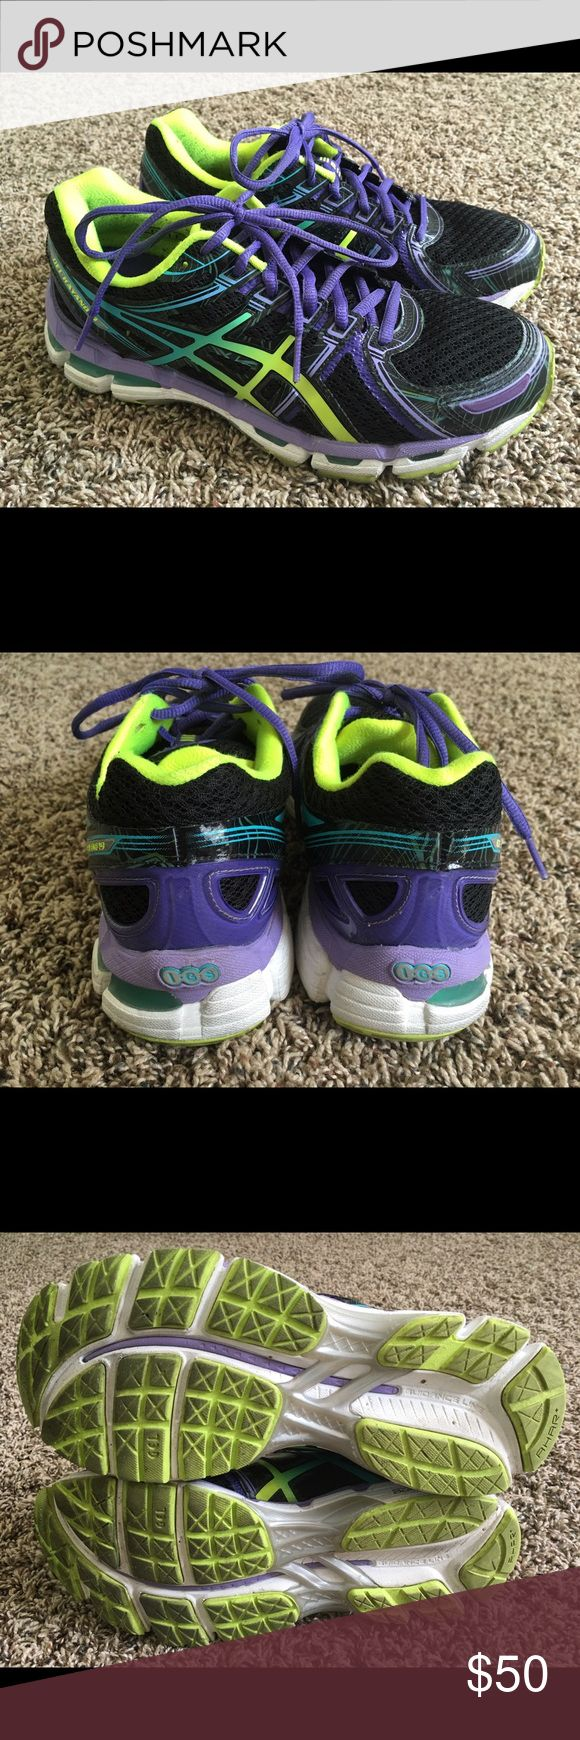 Asics Gel Kayano 19 Women's Size 8 Used for a short time for the gym and a few short runs. Asics Kayano 19 size 8 women's. Asics Shoes Athletic Shoes